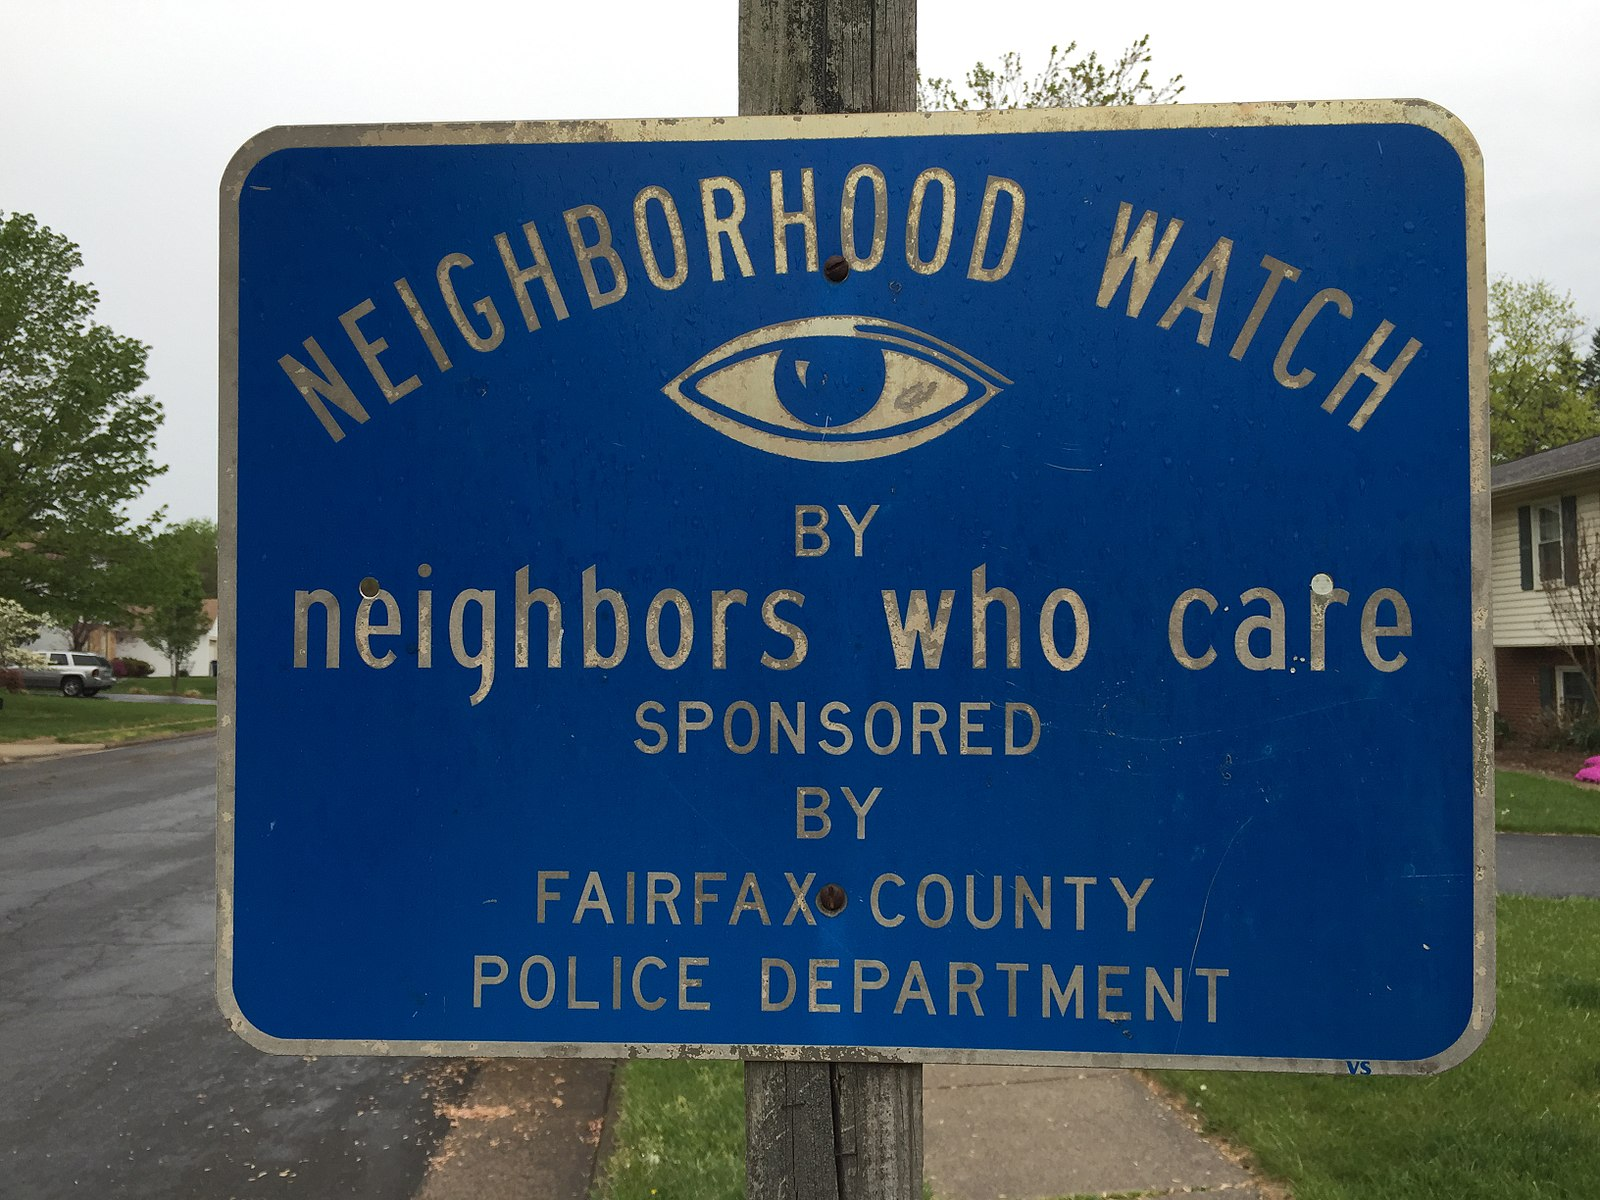 """Neighborhood watch by neighbors who care sponsored by Fairfax County Police Department"" Source: Wikimedia Commons"